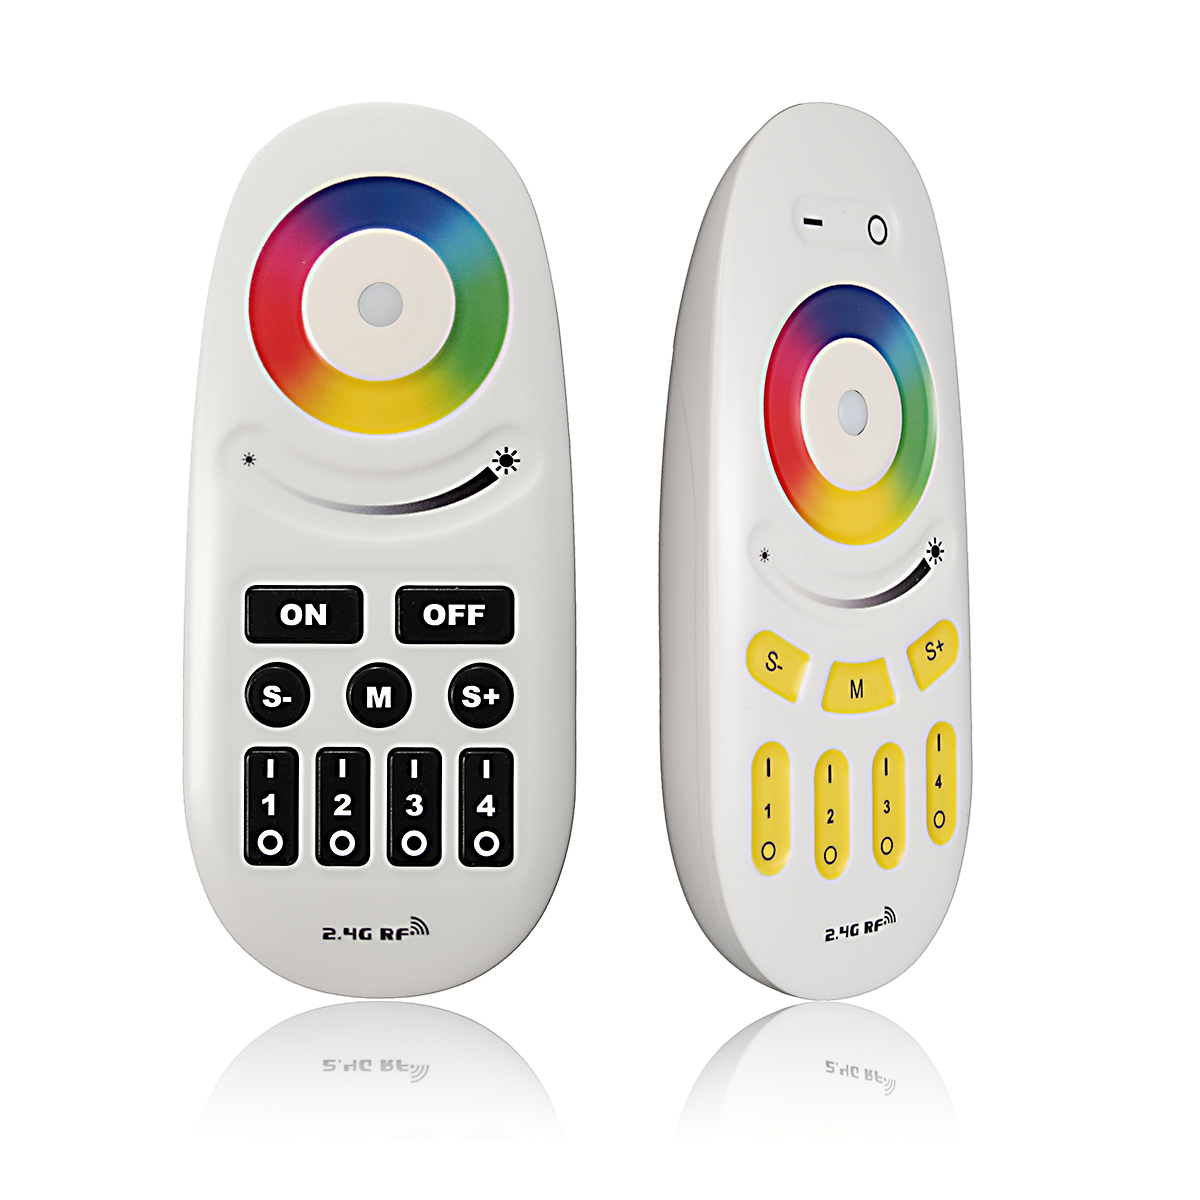 RGBW OR RGB LED Controller 2.4G RF Touch Screen Remote Control 6A per Channel for RGB/Single led strip Light